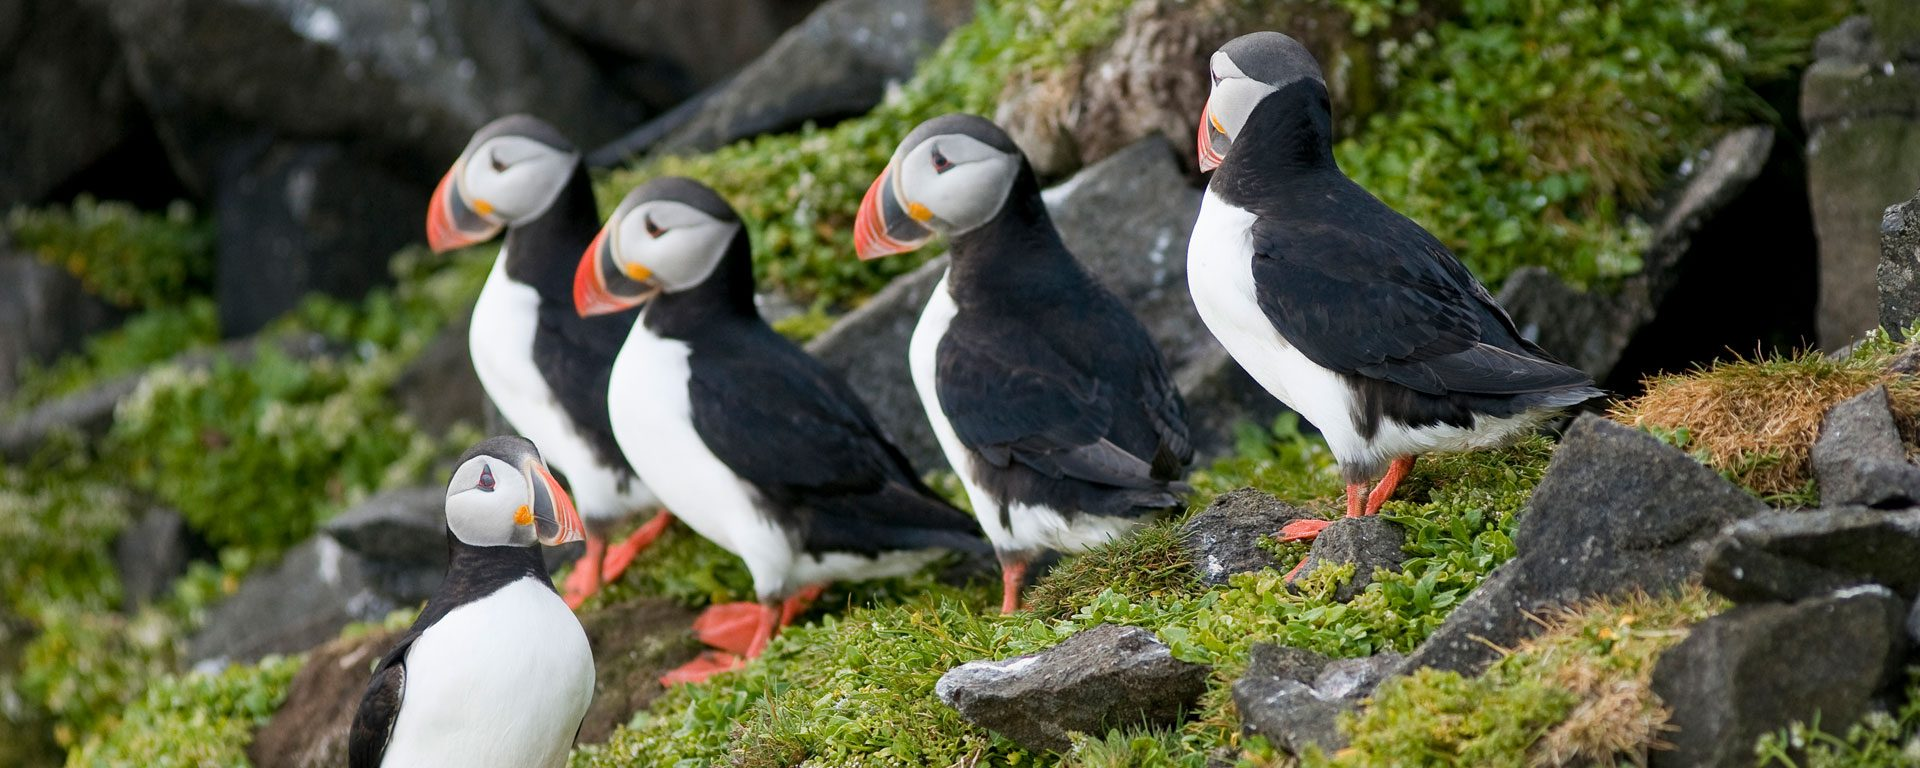 Adult puffins perched on a cliff in Norway's Svalbard Archipelago